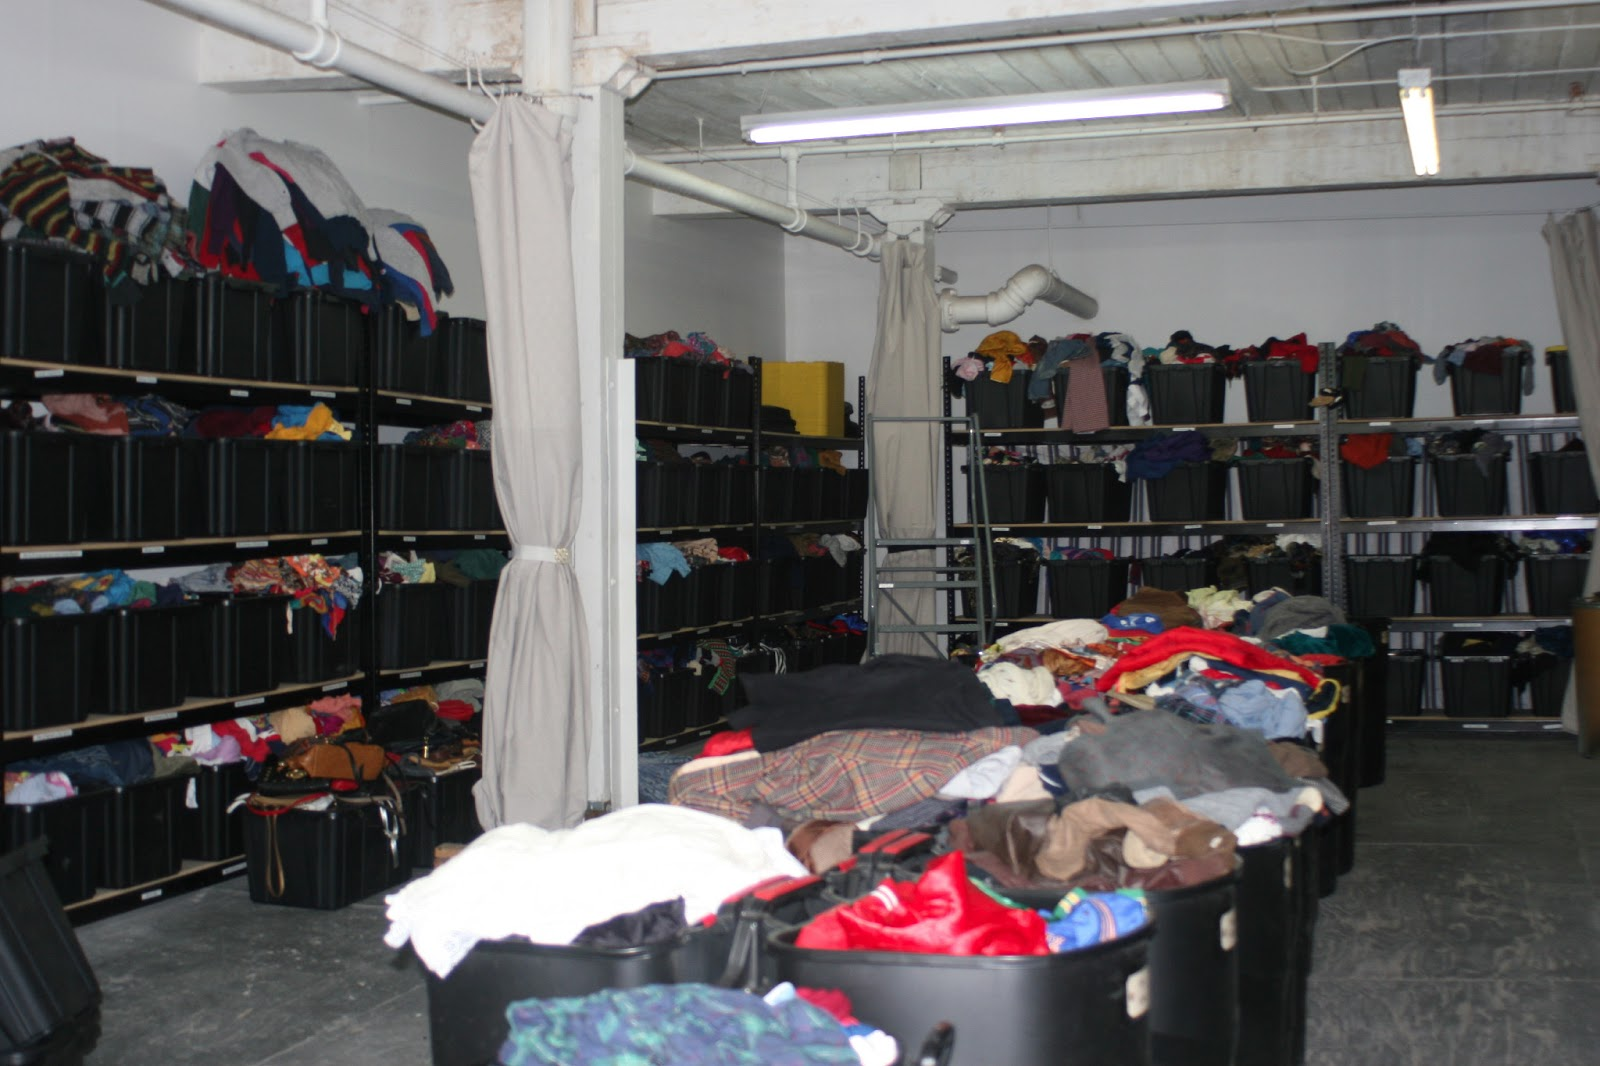 Just picture this room full of people stuffing clothes in a bag